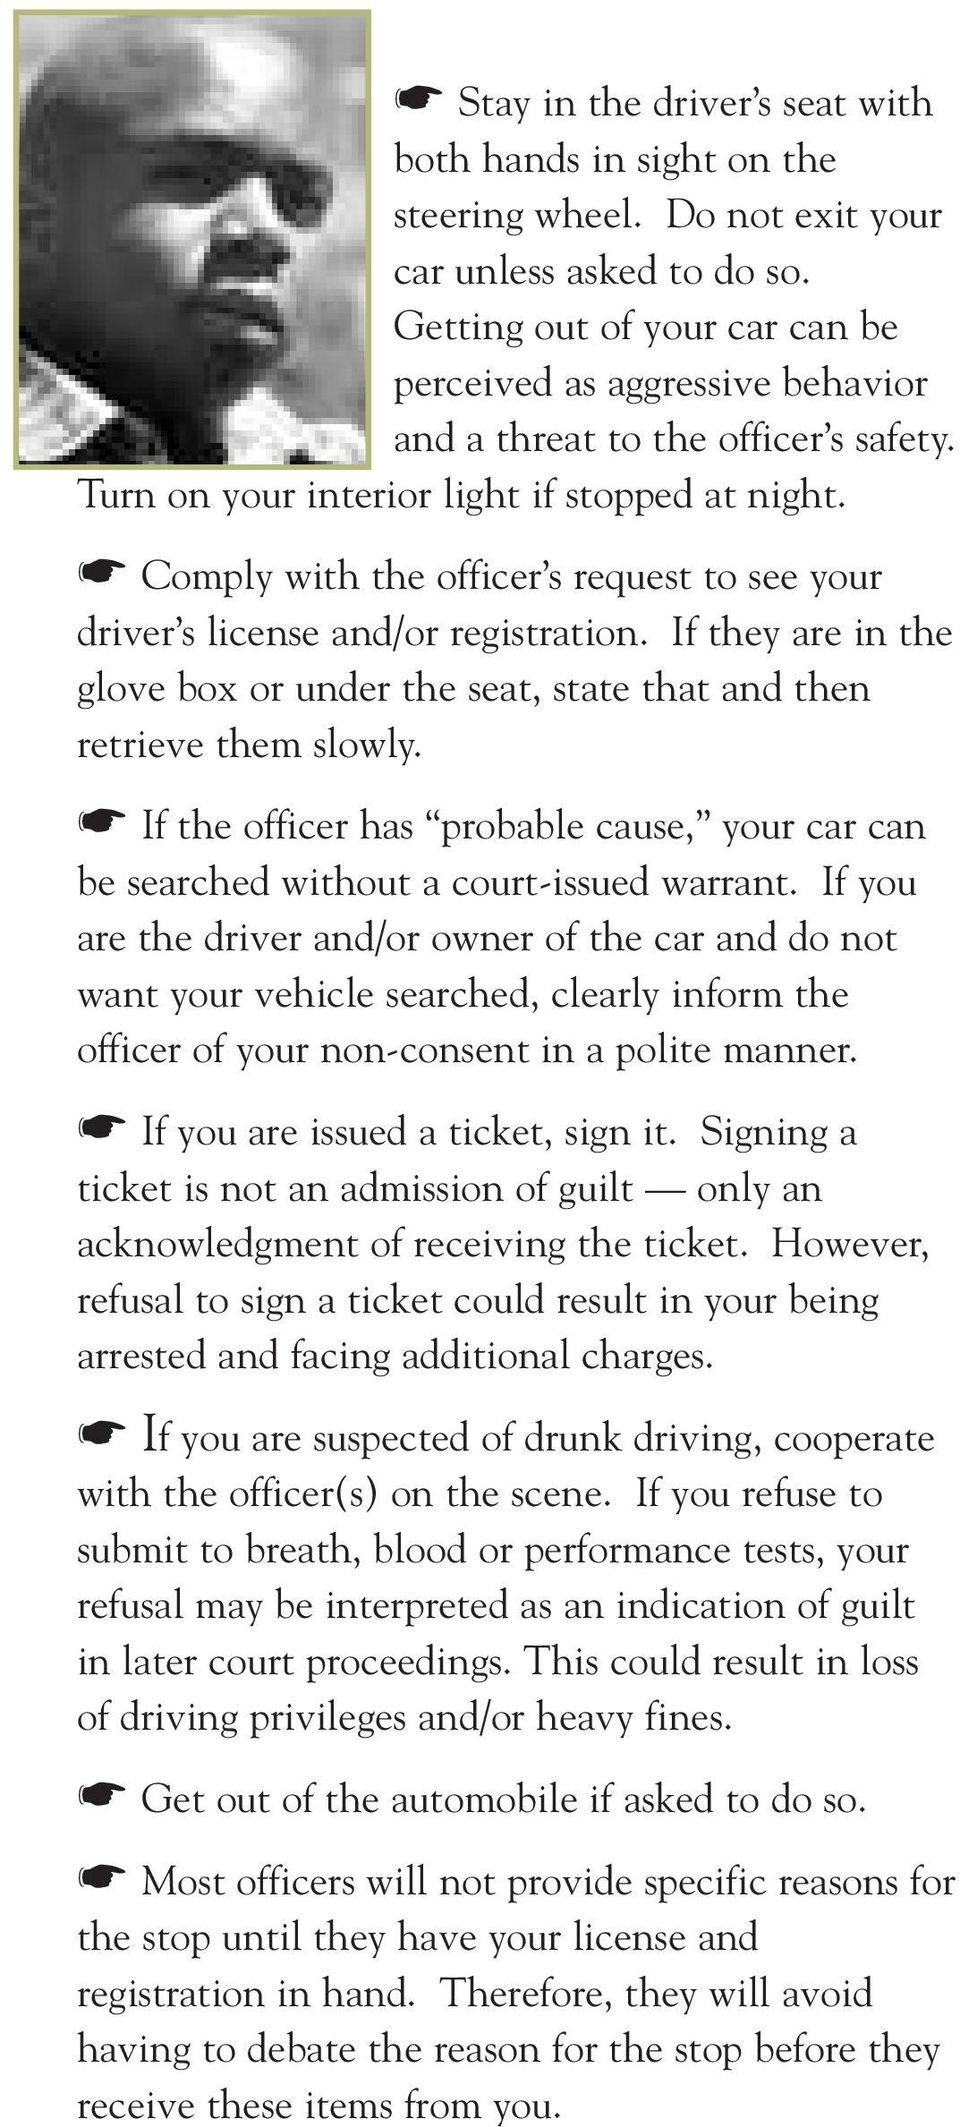 Comply with the officer s request to see your driver s license and/or registration. If they are in the glove box or under the seat, state that and then retrieve them slowly.